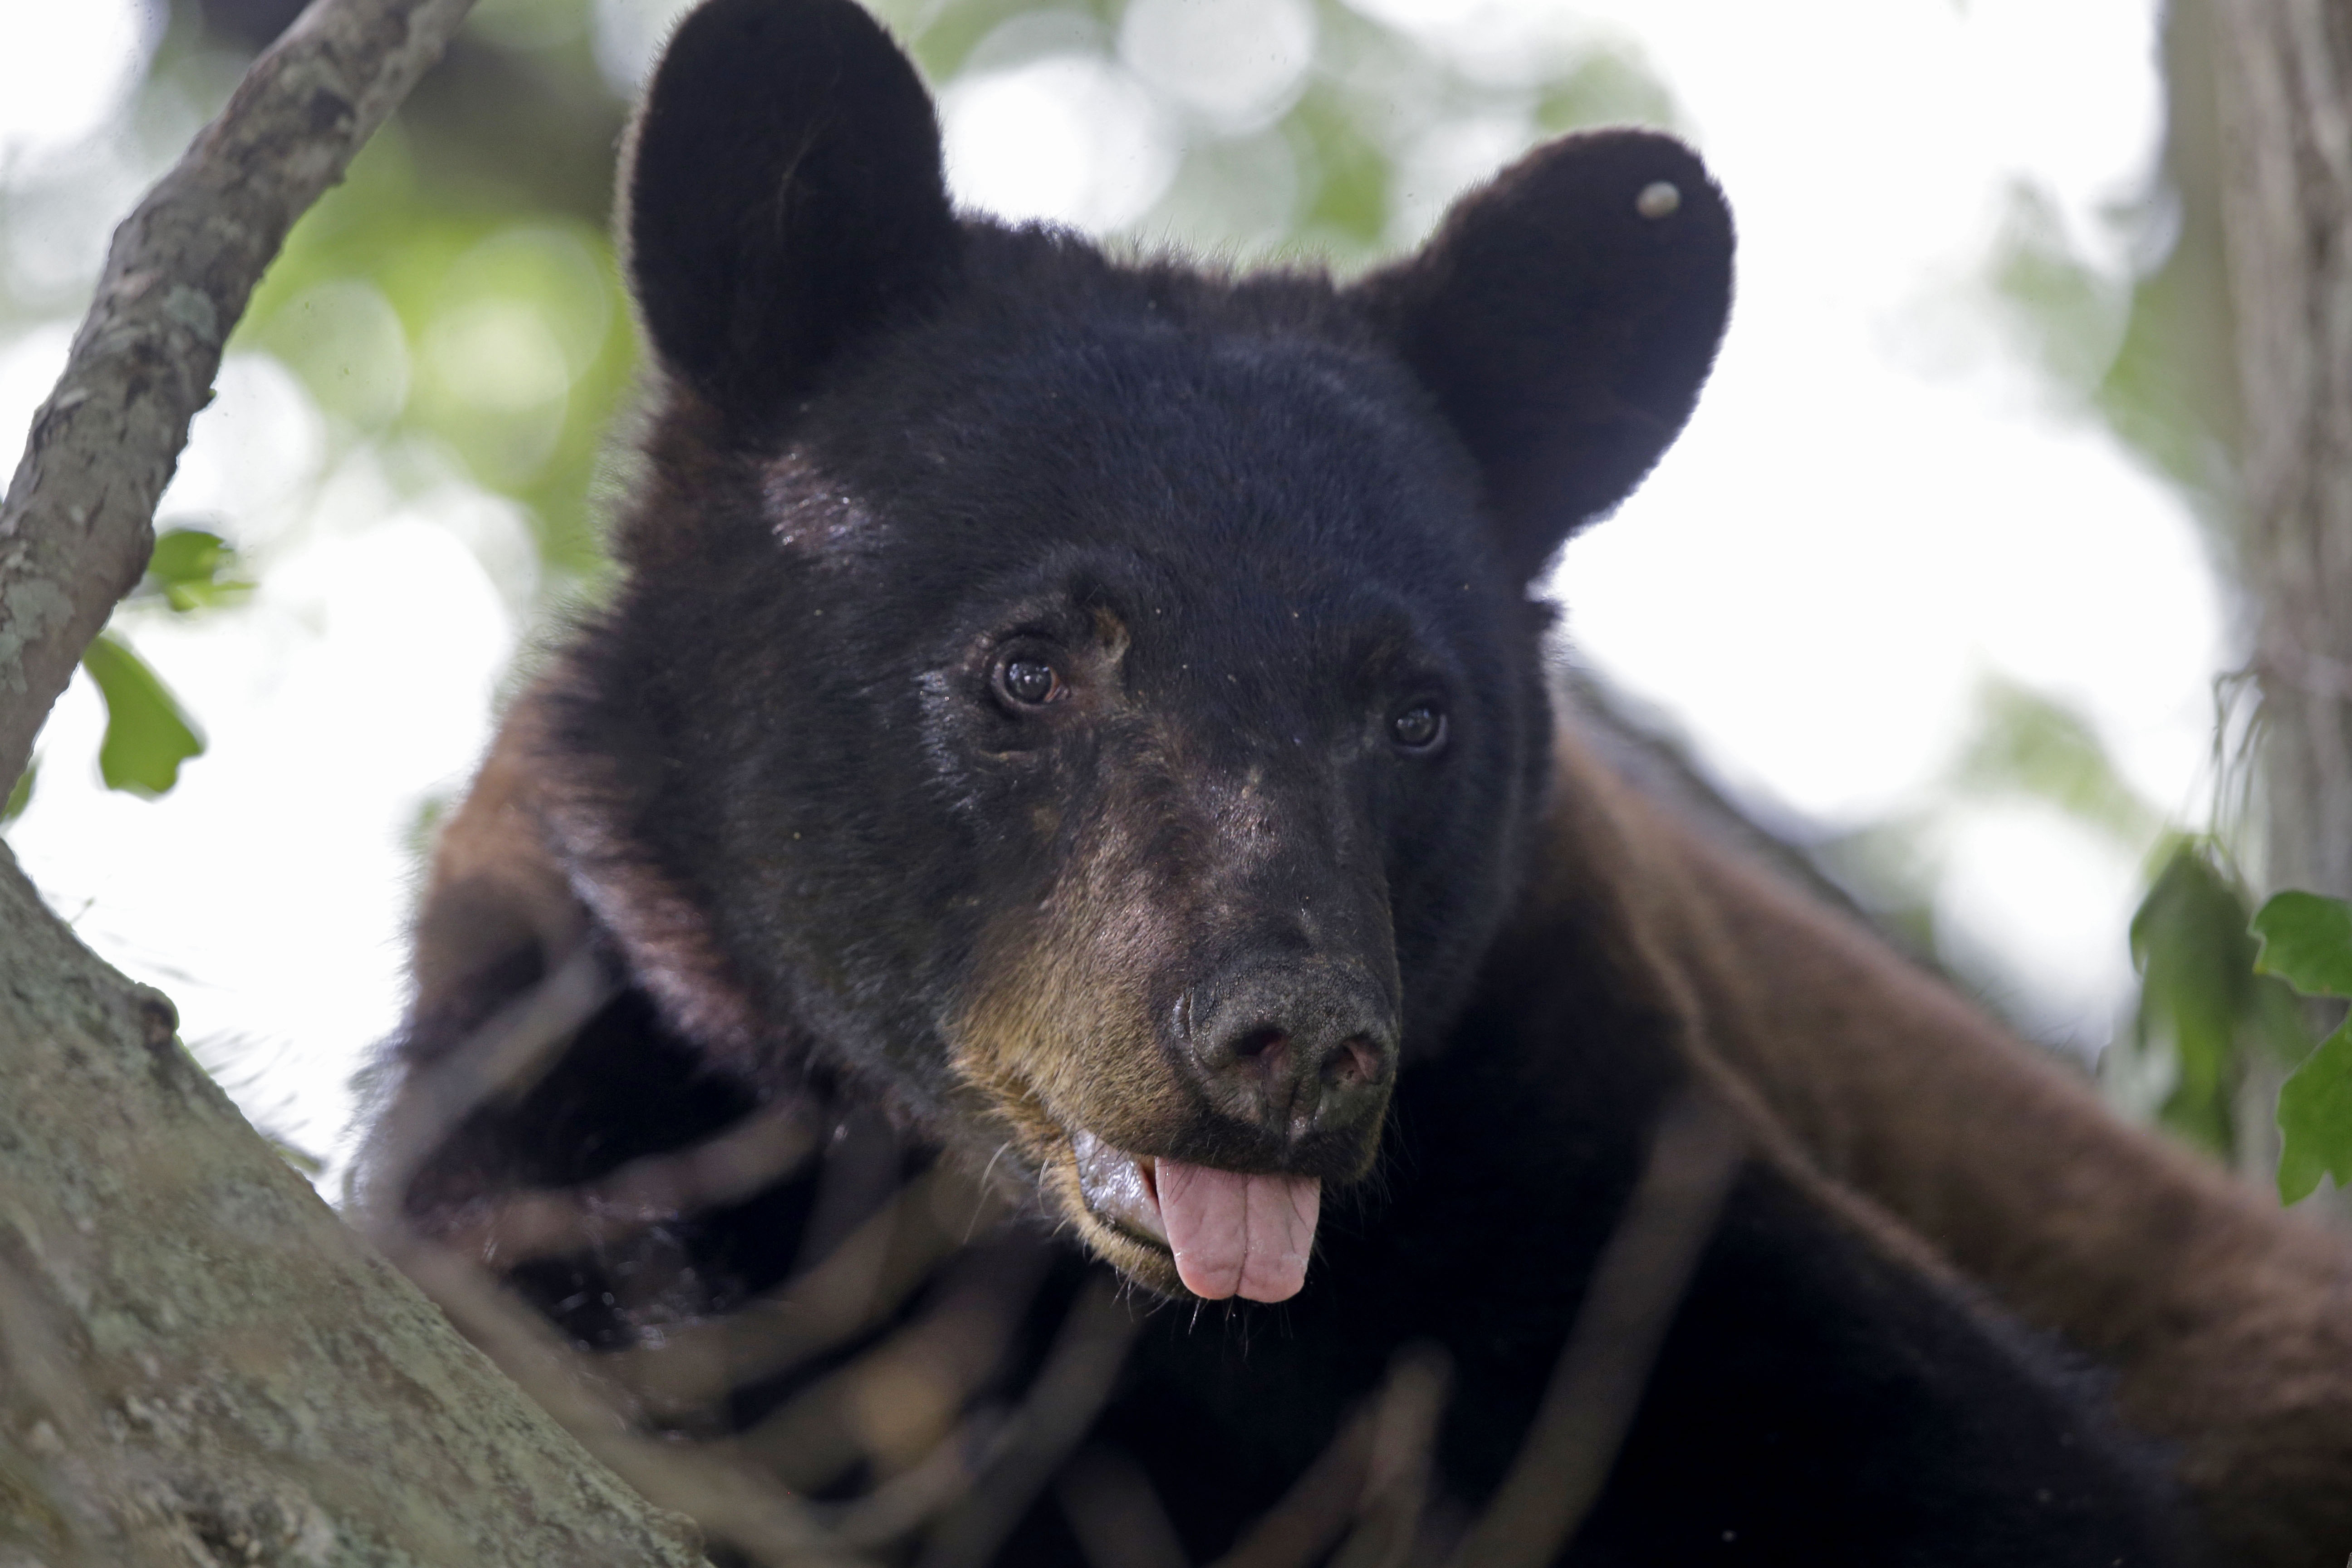 In this May 17, 2015 photo, a Louisiana Black Bear, sub-species of the black bear that is protected under the Endangered Species Act, is seen in a water oak tree in Marksville, La.